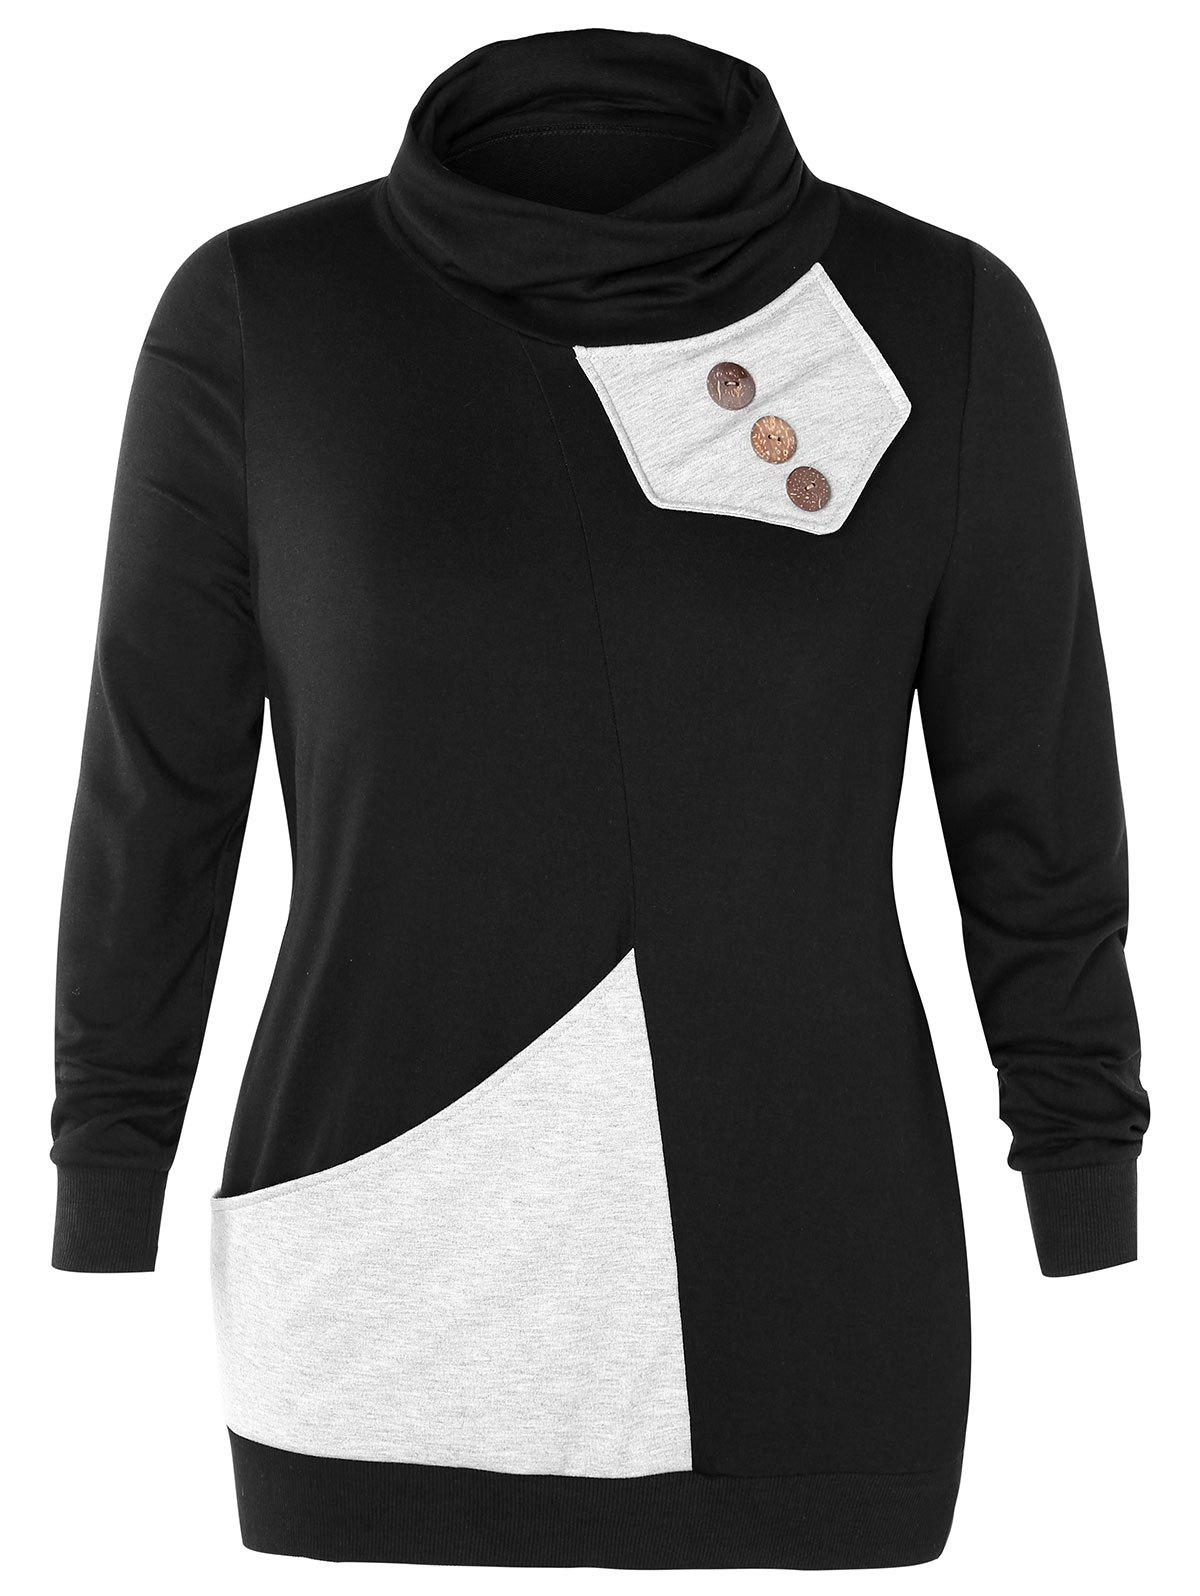 Plus Size Cowl Neck Button Embellished Sweatshirt